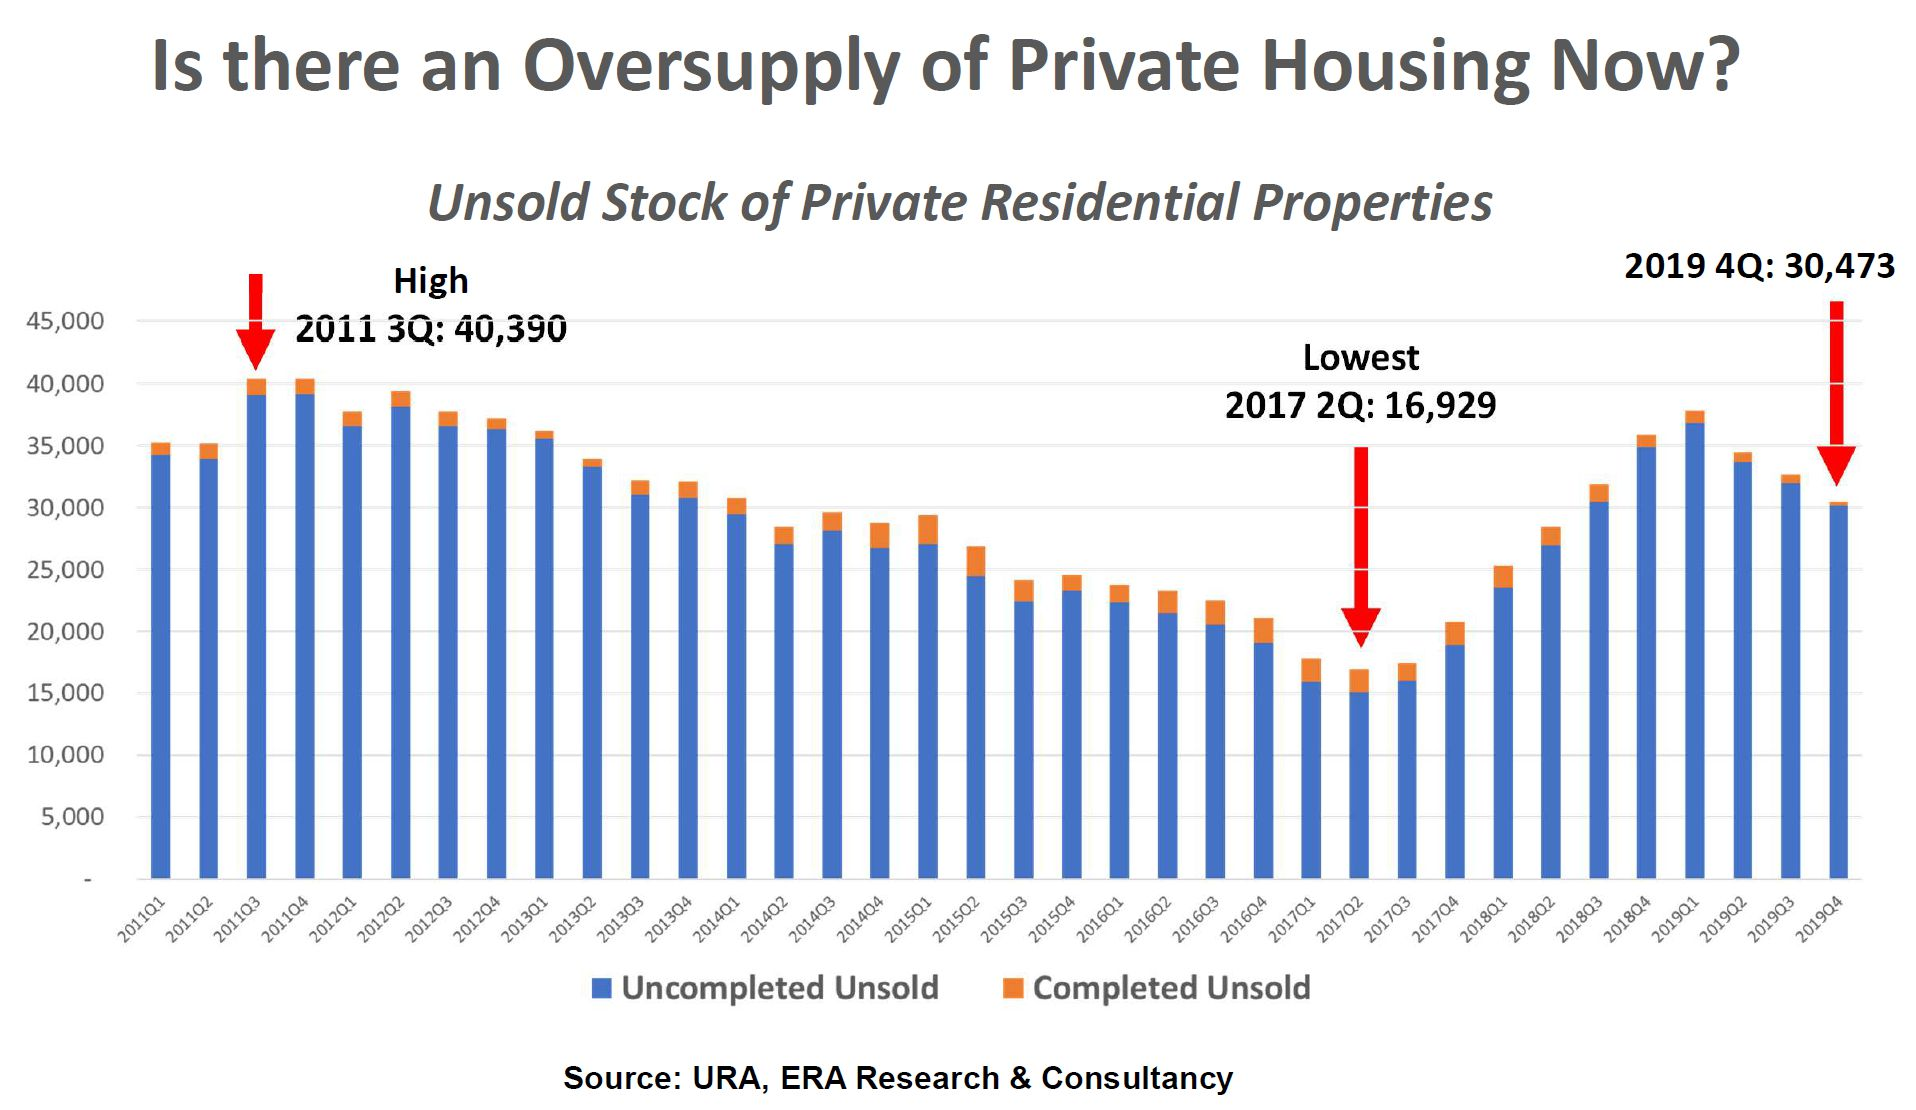 Oversupply of unsold unit